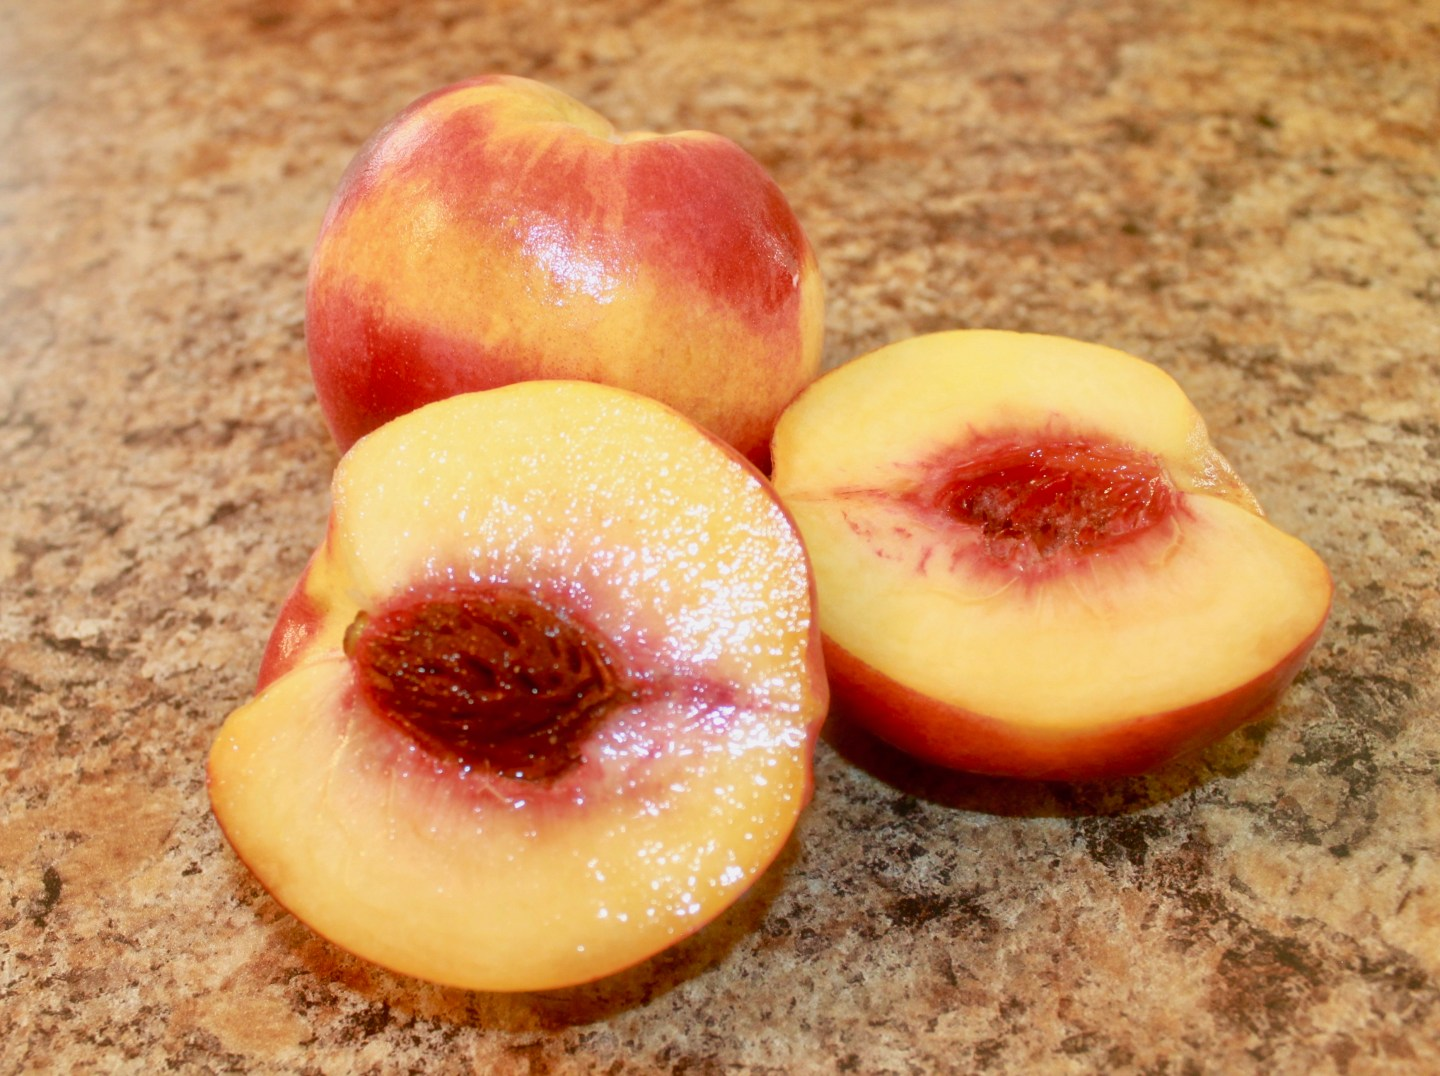 List of ingredients for a Peach Cobbler Recipe